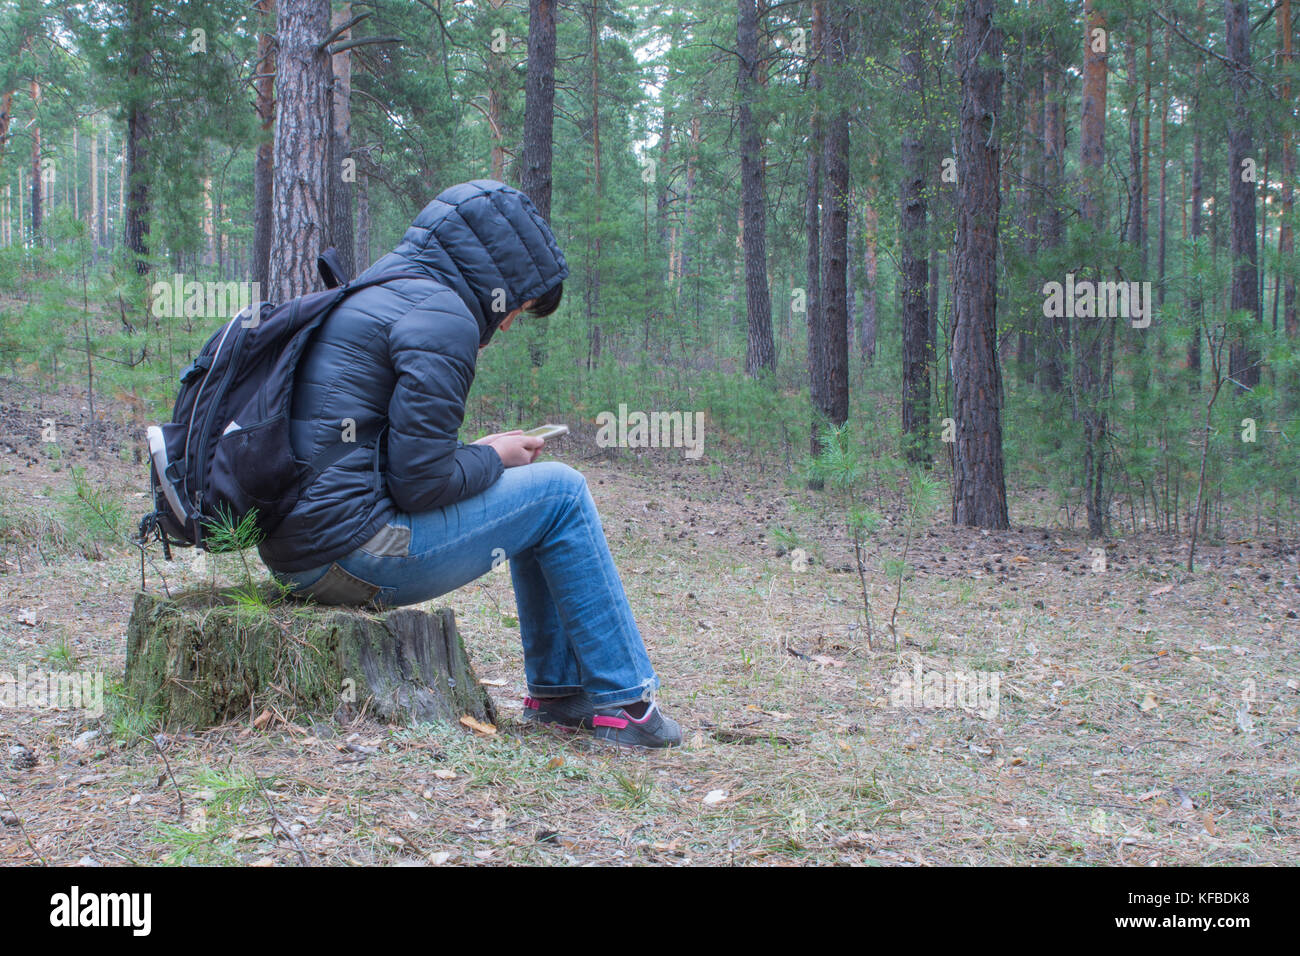 A woman sits on a stump in the woods early in the morning and checks her cellphone.  A female hiker, backpacker - Stock Image